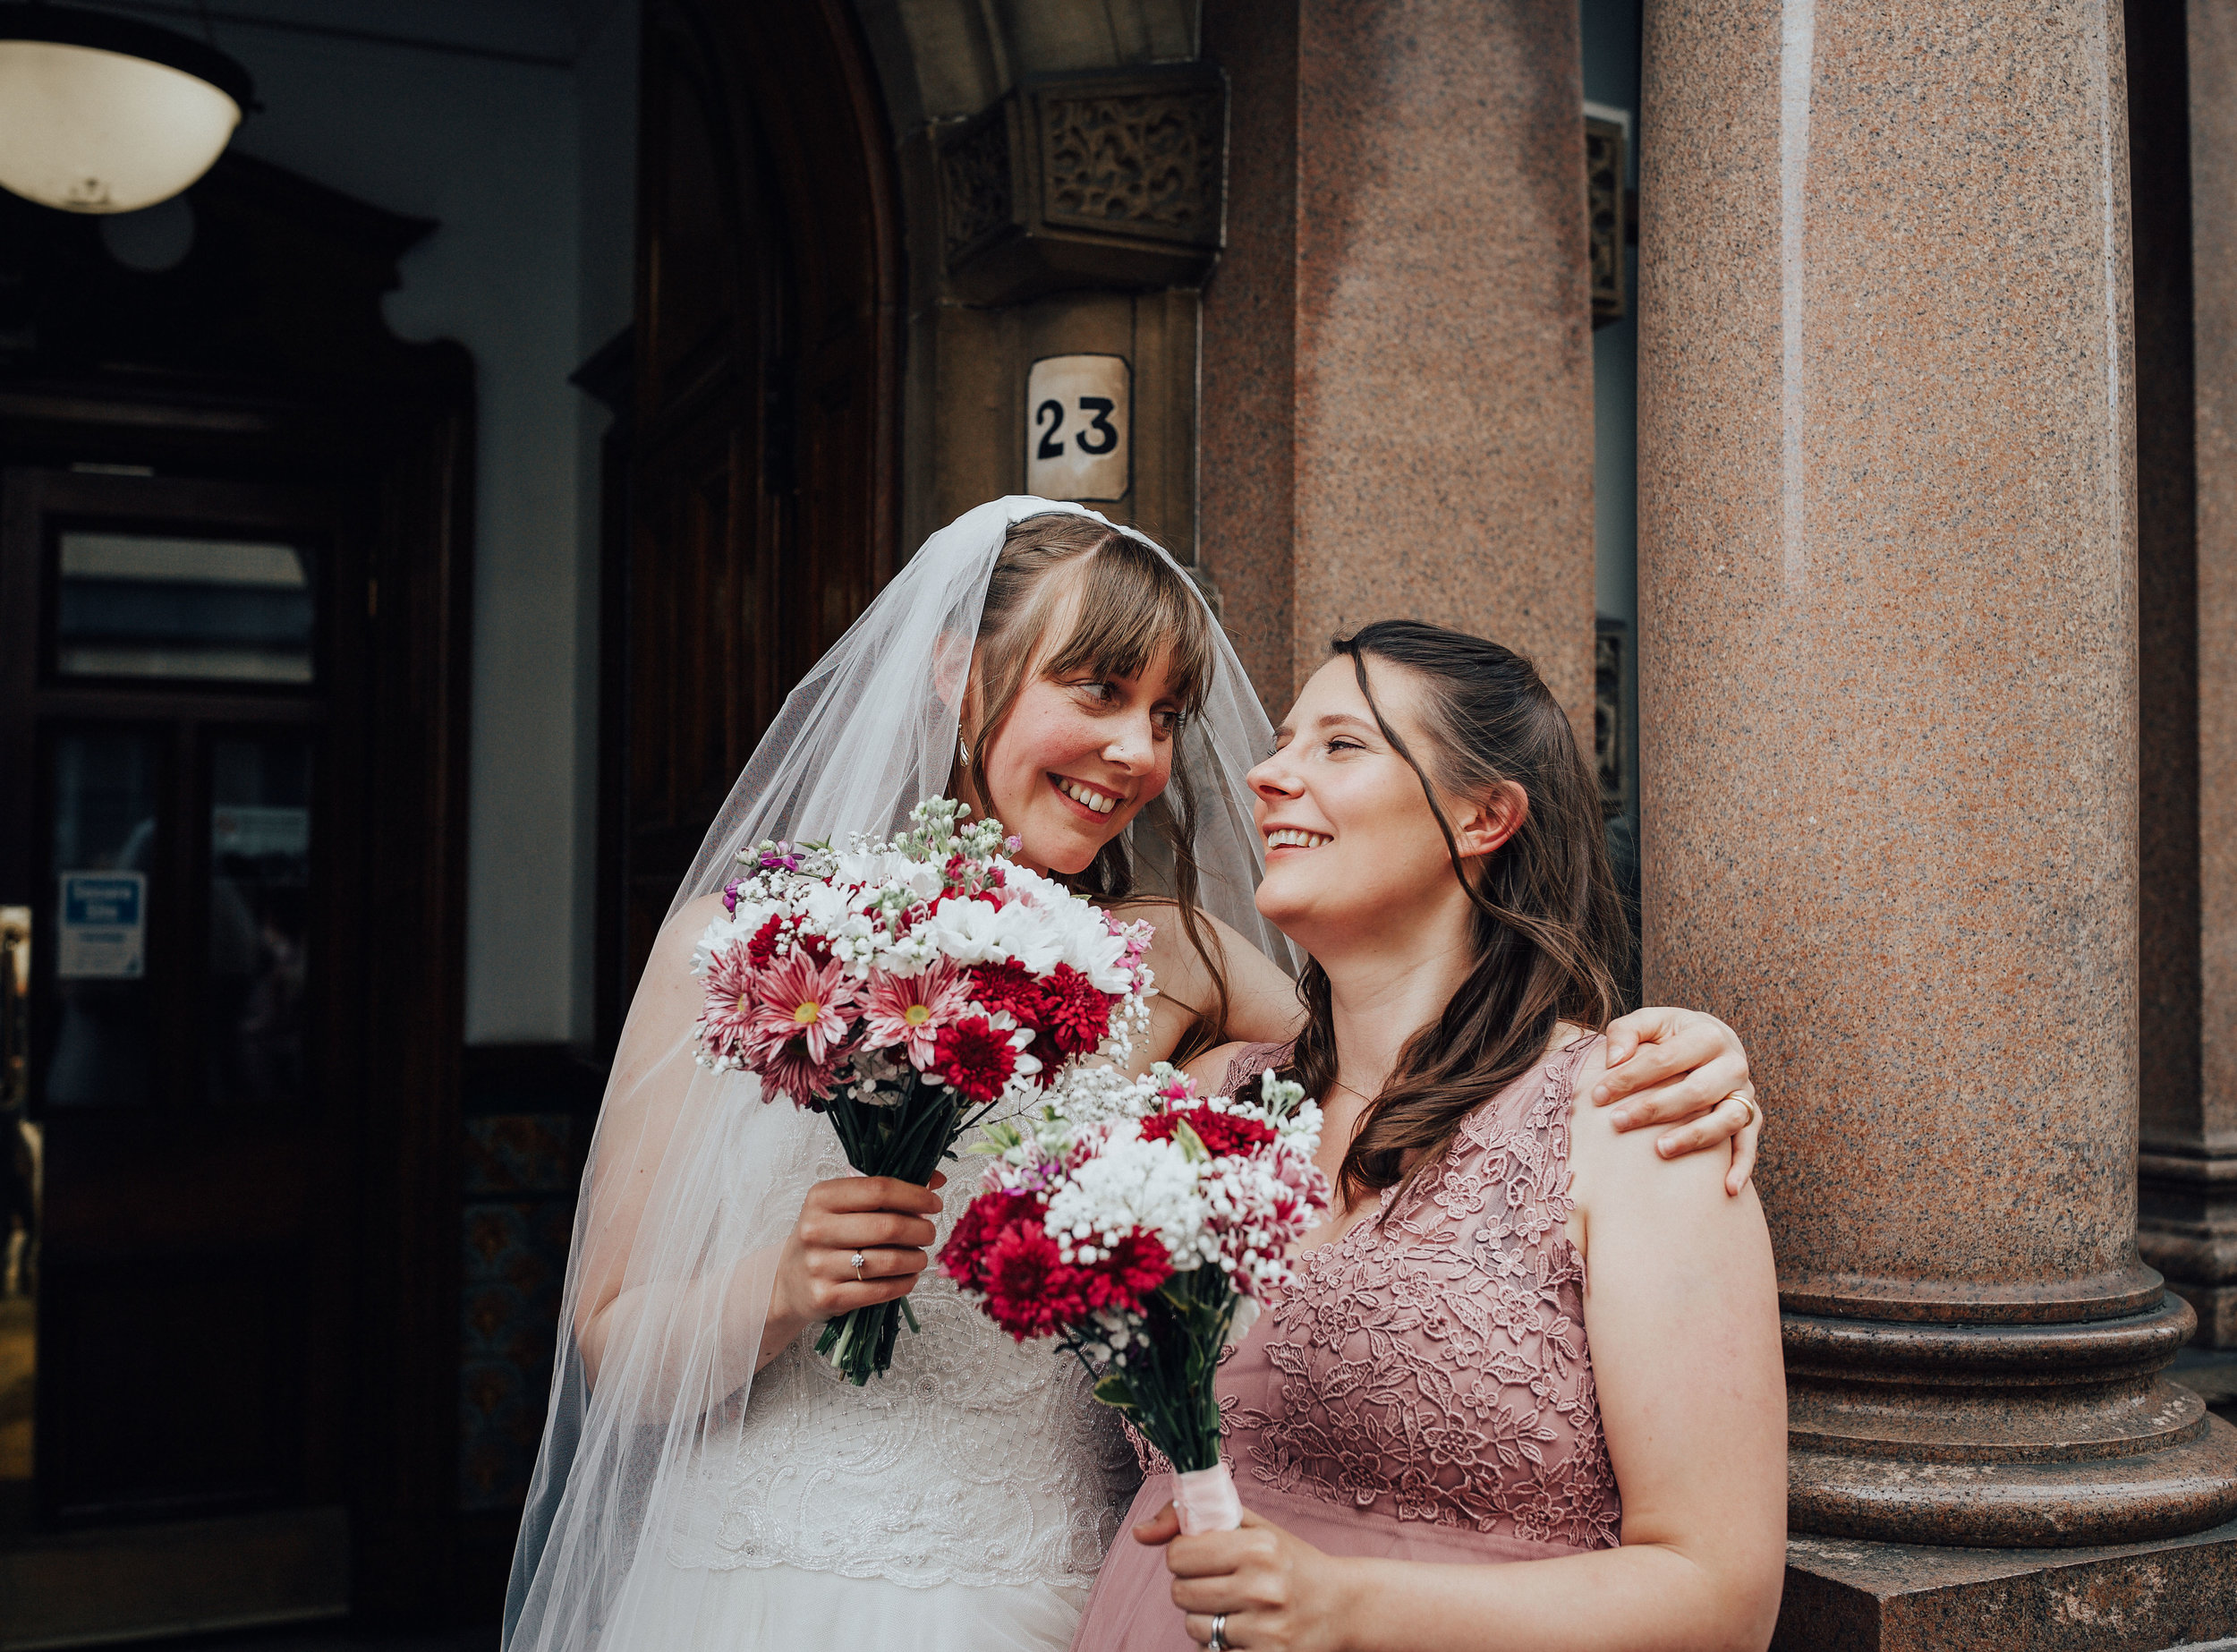 ALTERNATIVE_GLASGOW_CITY_WEDDING_PJ_PHILLIPS_PHOTOGRAPHY_WEDDING_PHOTOGRAPHY_62.jpg